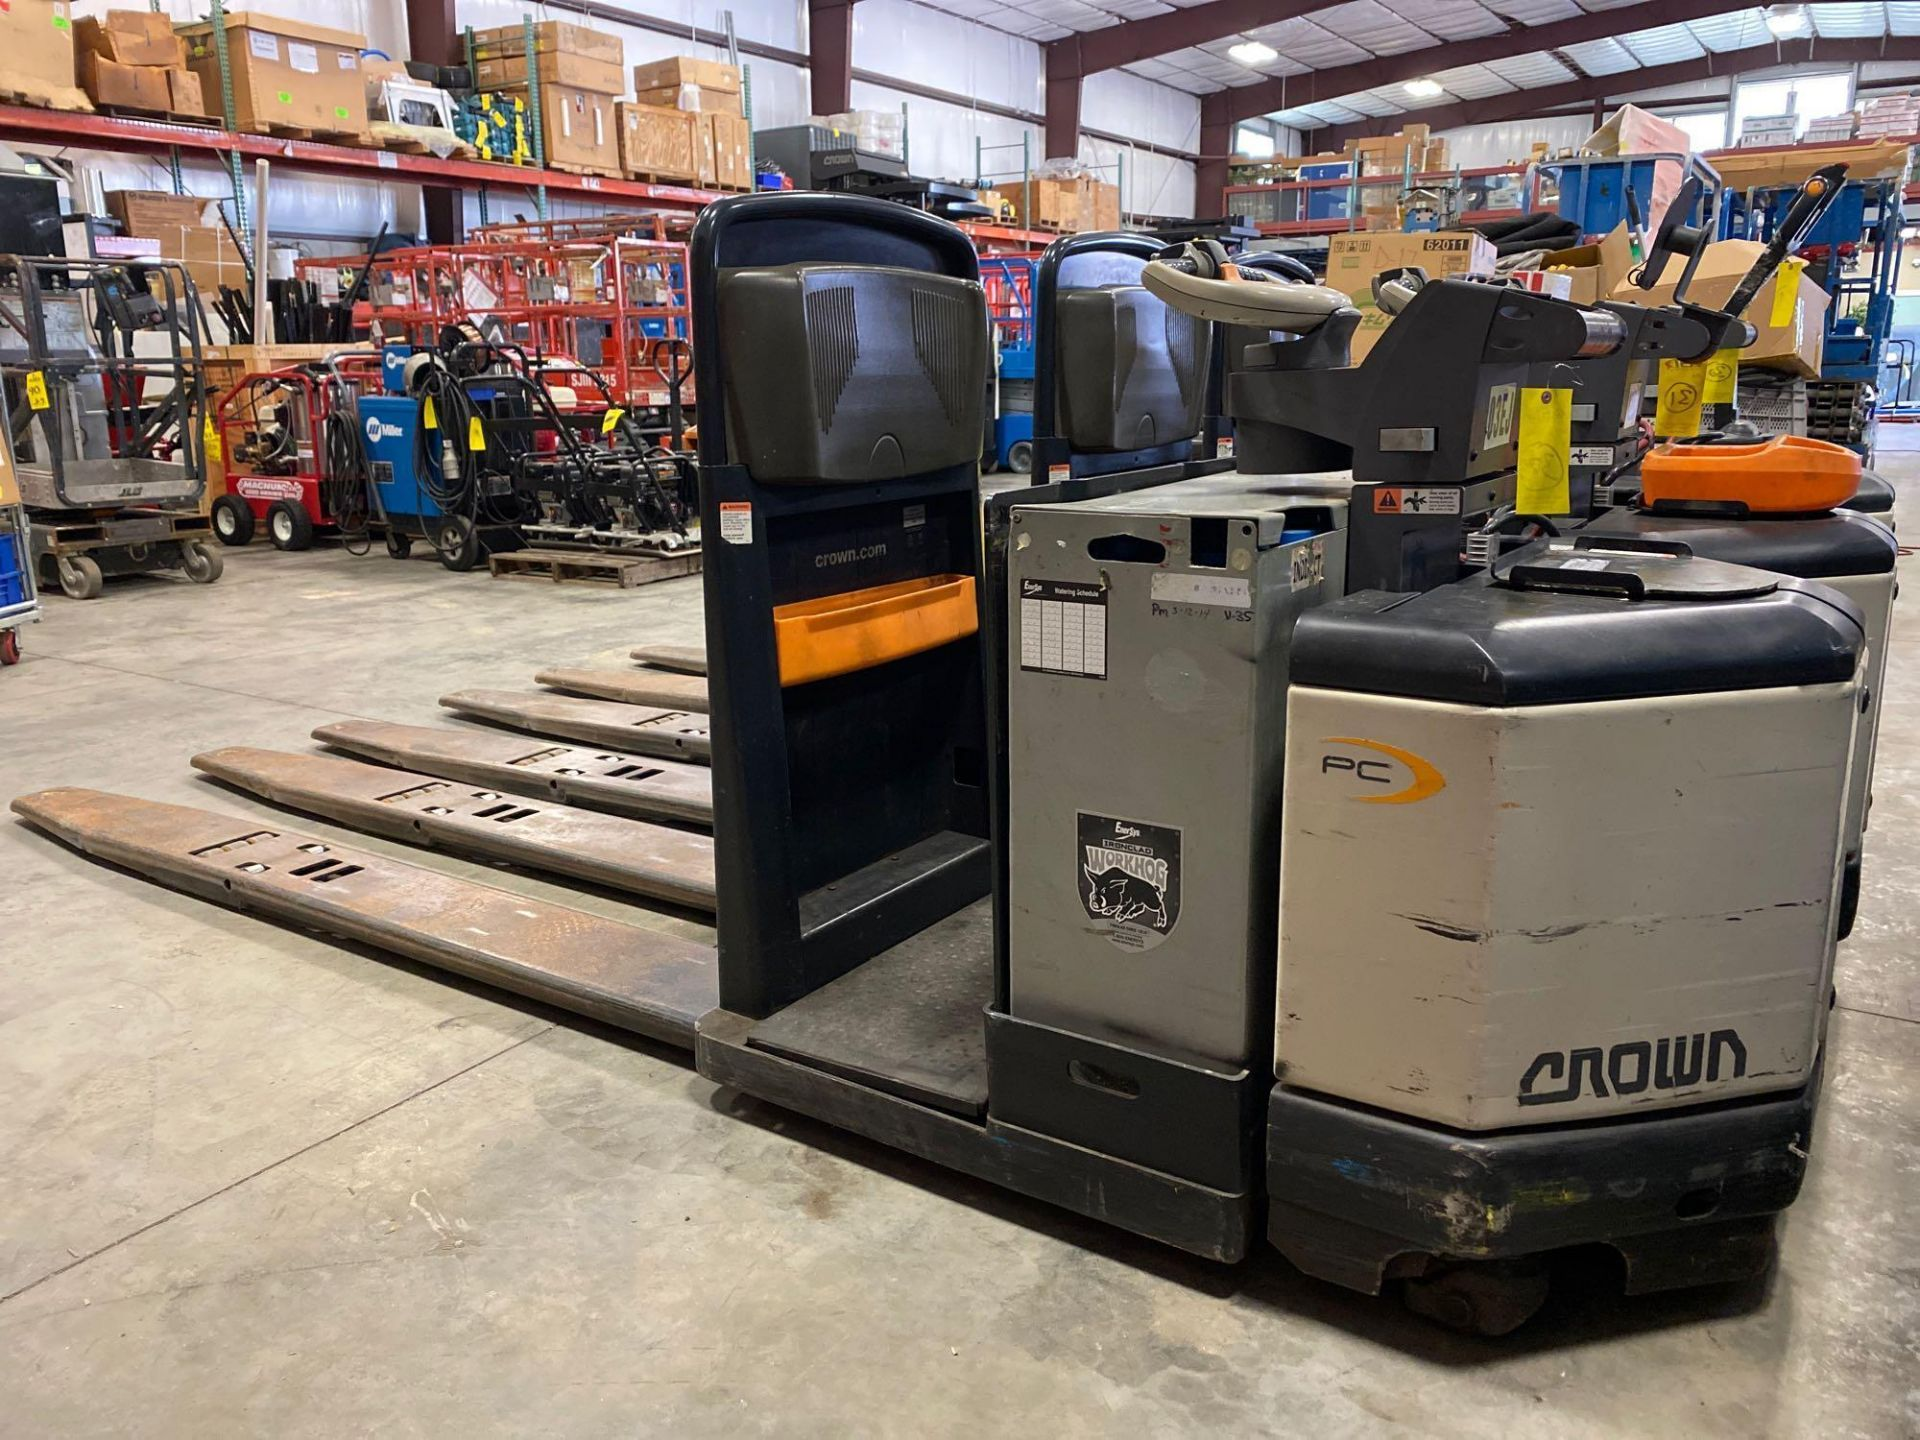 Lot 32 - 2012 CROWN ELECTRIC PALLET JACK, 8,000 LB CAPACITY, MODEL PC4500-80, 24V, RUNS AND OPERATES